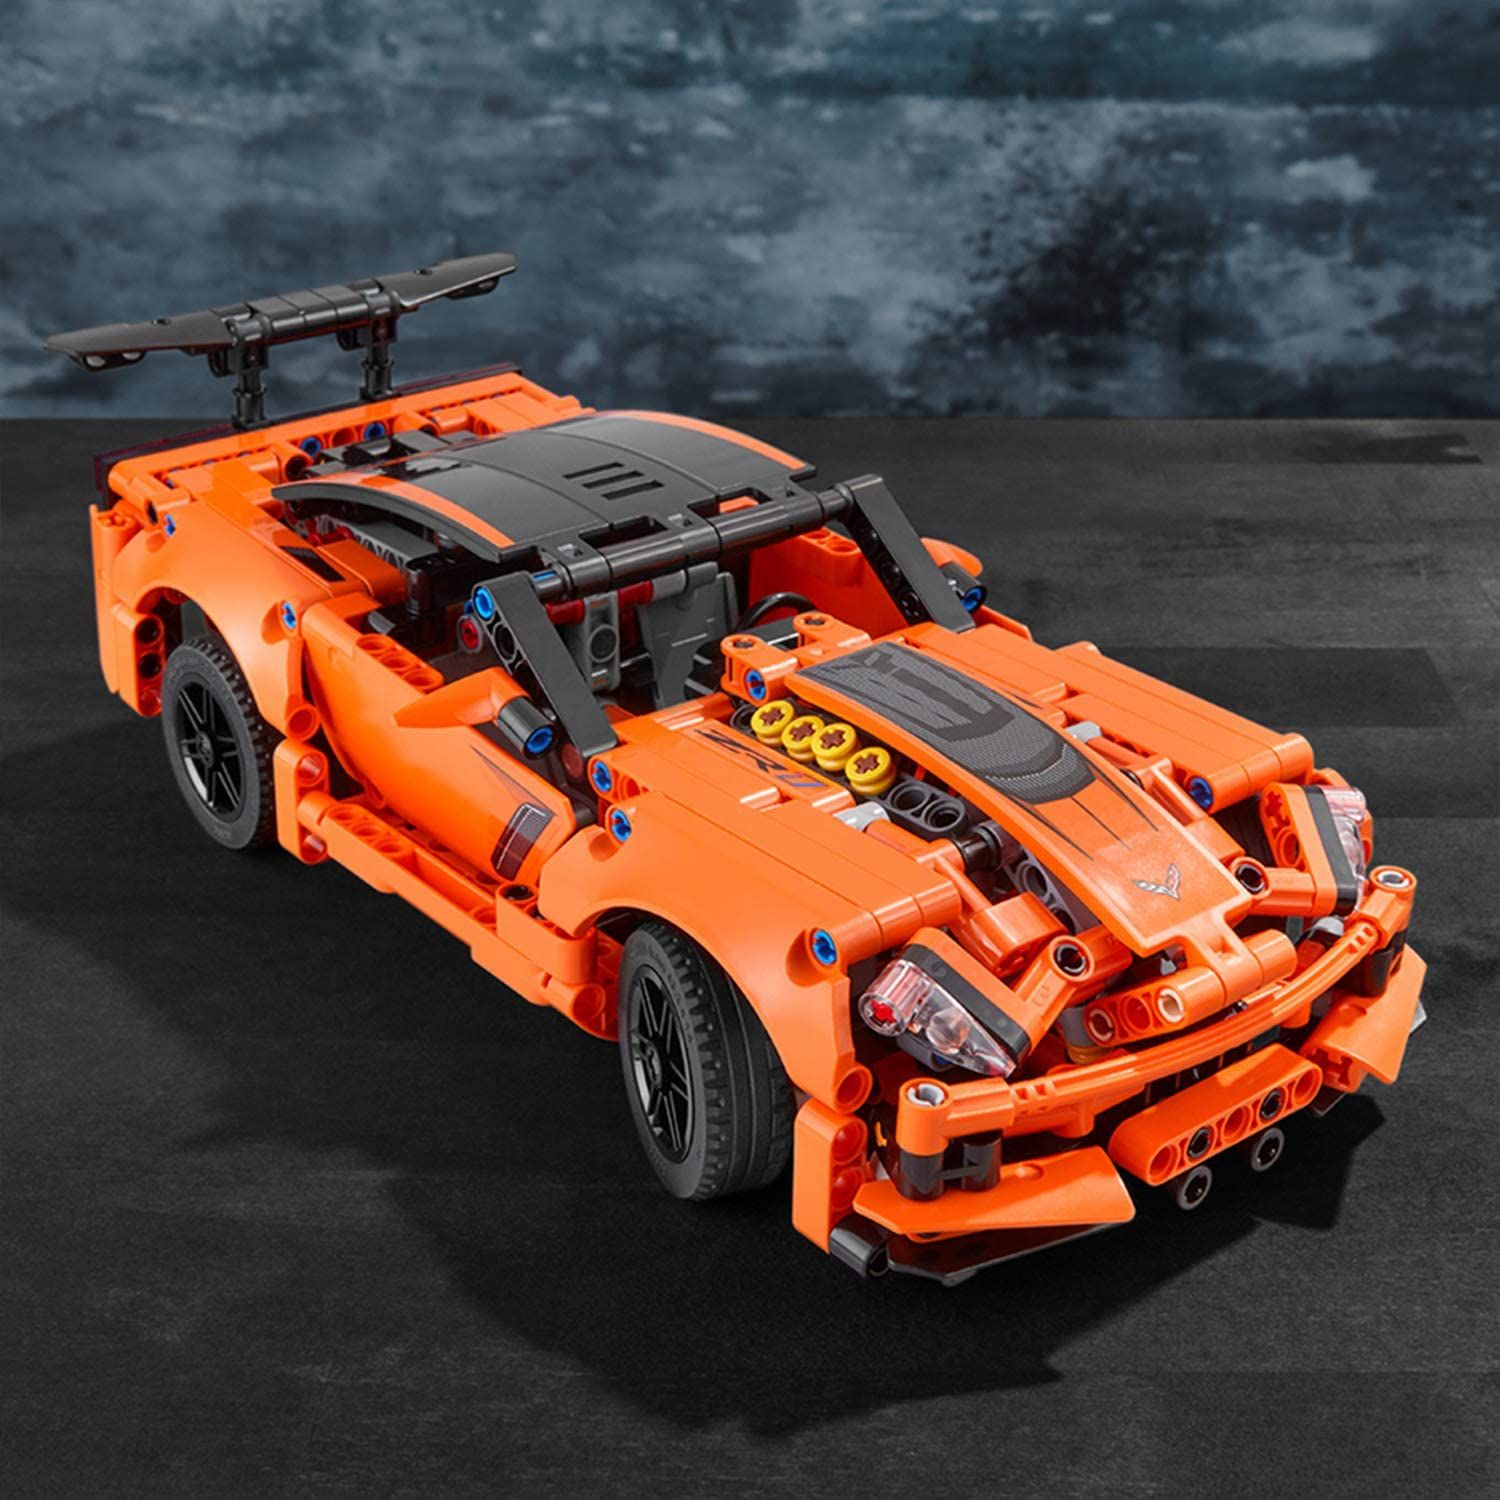 Lego Technic Chevrolet Corvette Zr1 Jeu De Construction Voiture 9 Ans Et Plus Corvette Zr1 Chevrolet Corvette Technique Lego